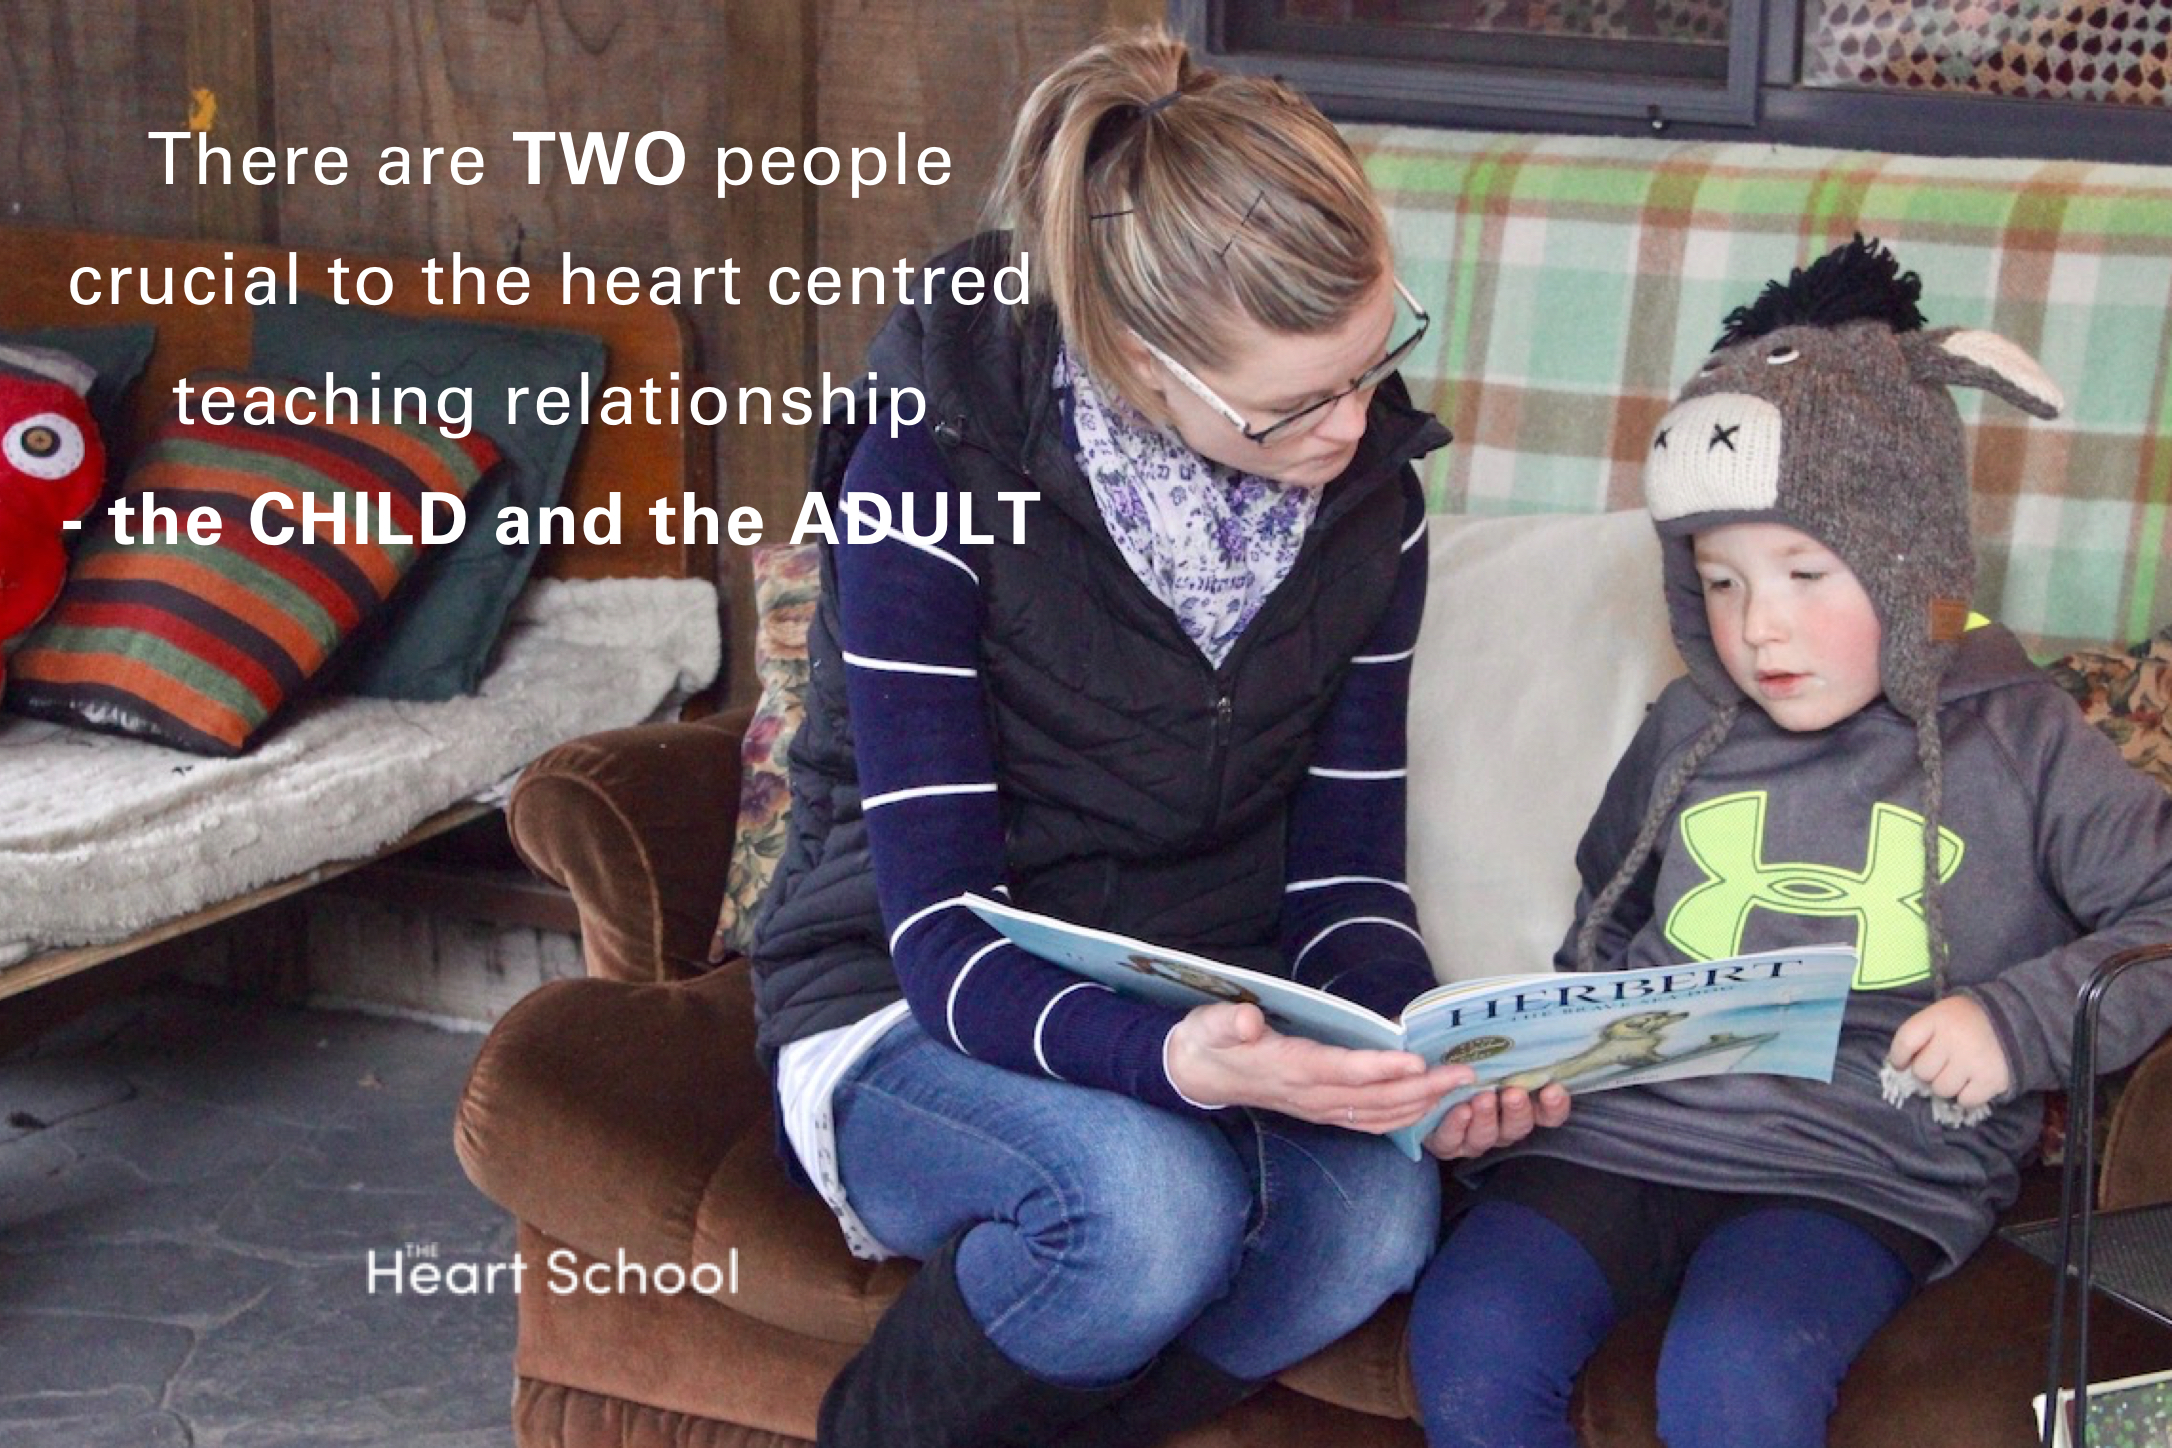 Children can only be really settled in themselves if their emotional needs for connection and safety are met. Heart deposits are made whenever children are met with kindness from caring adults. Children's memories will fade over time, and they may not recall their specific interactions and activities, the impressions of kindness, trust and care will remain at the deepest level.